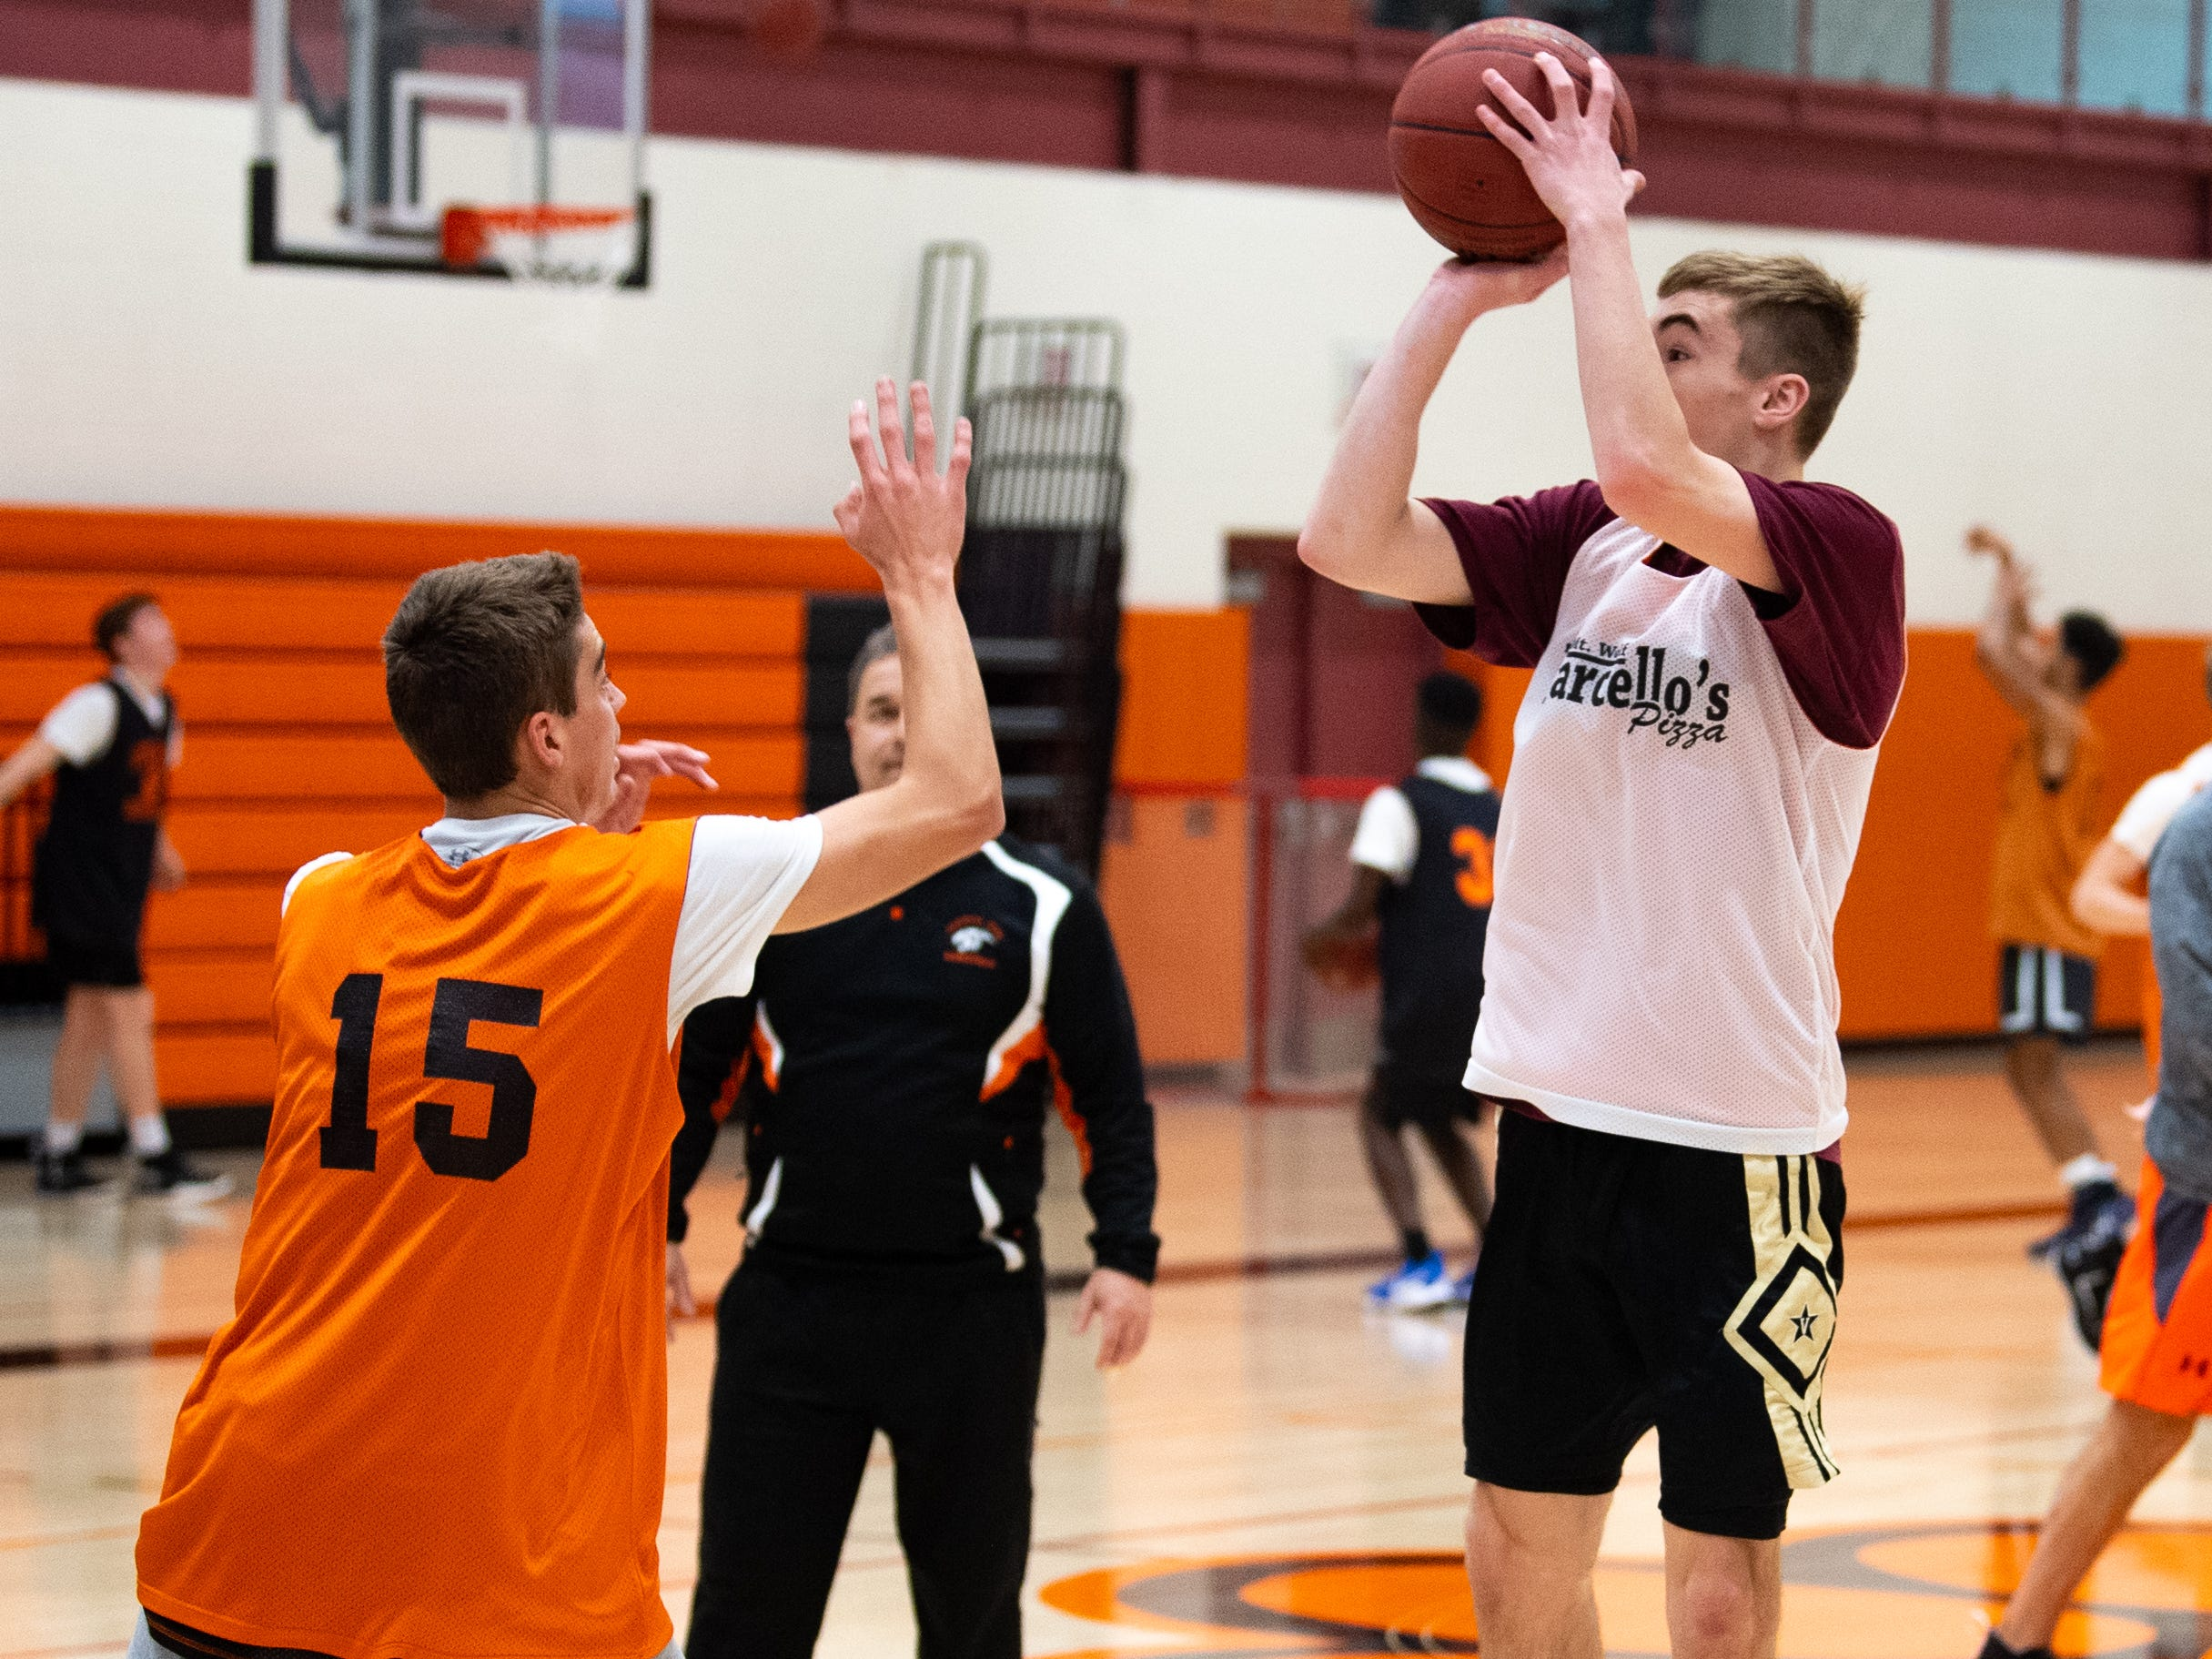 Central York boys' basketball players shoot 3-pointers during practice, Wednesday, November 21, 2018.